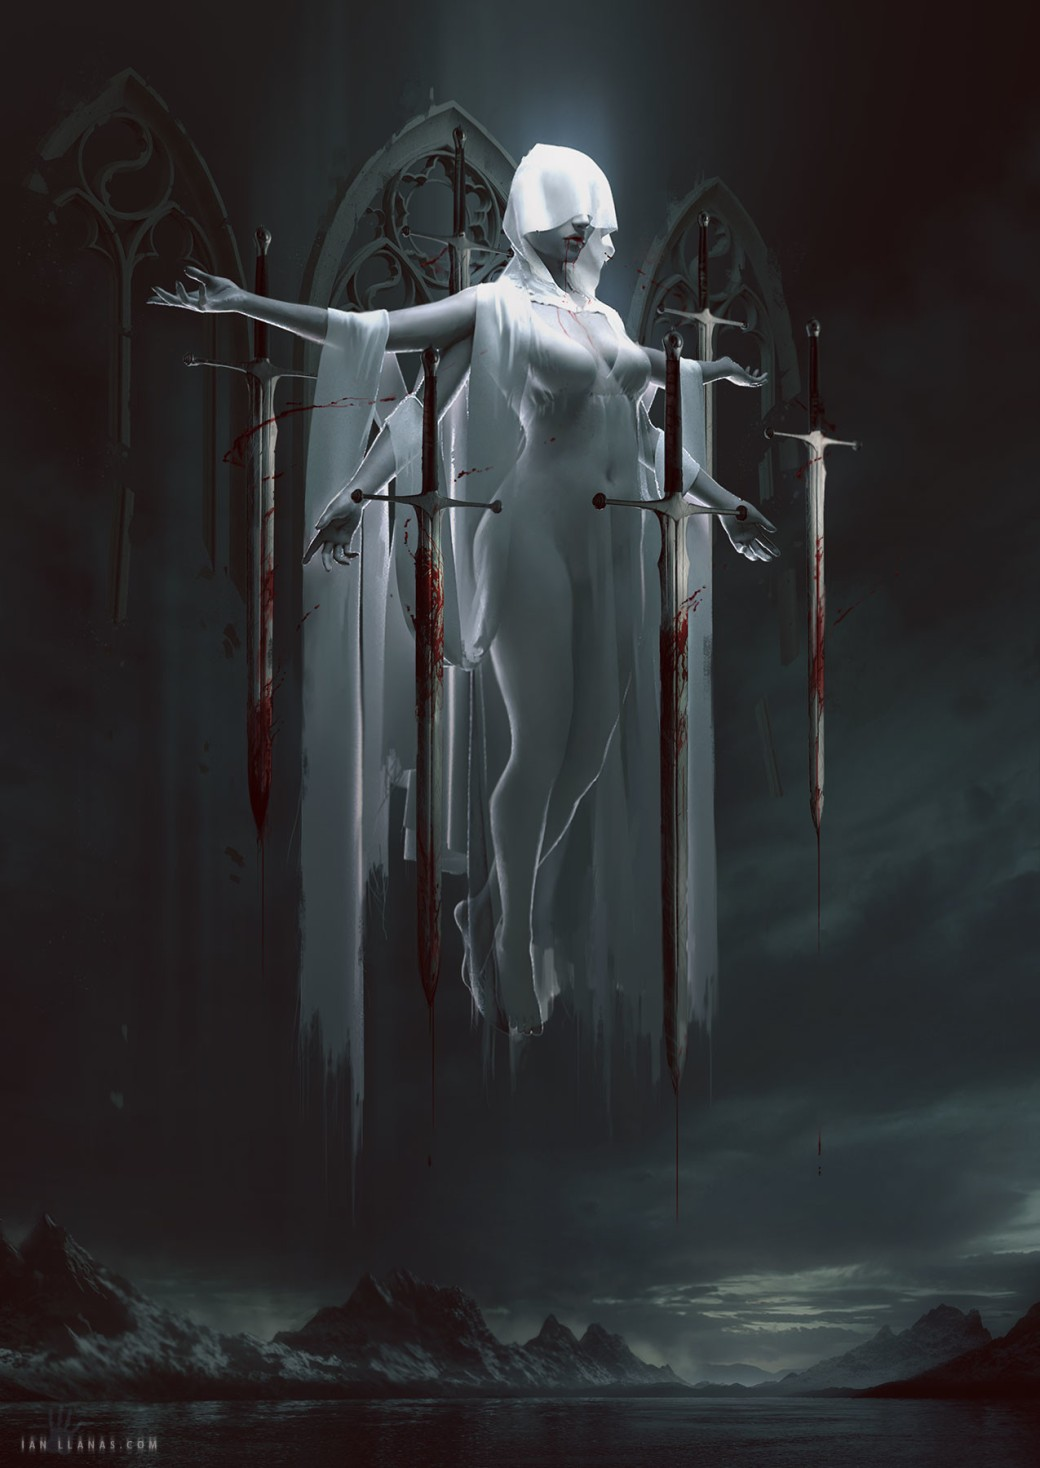 queen of swords ian llanas